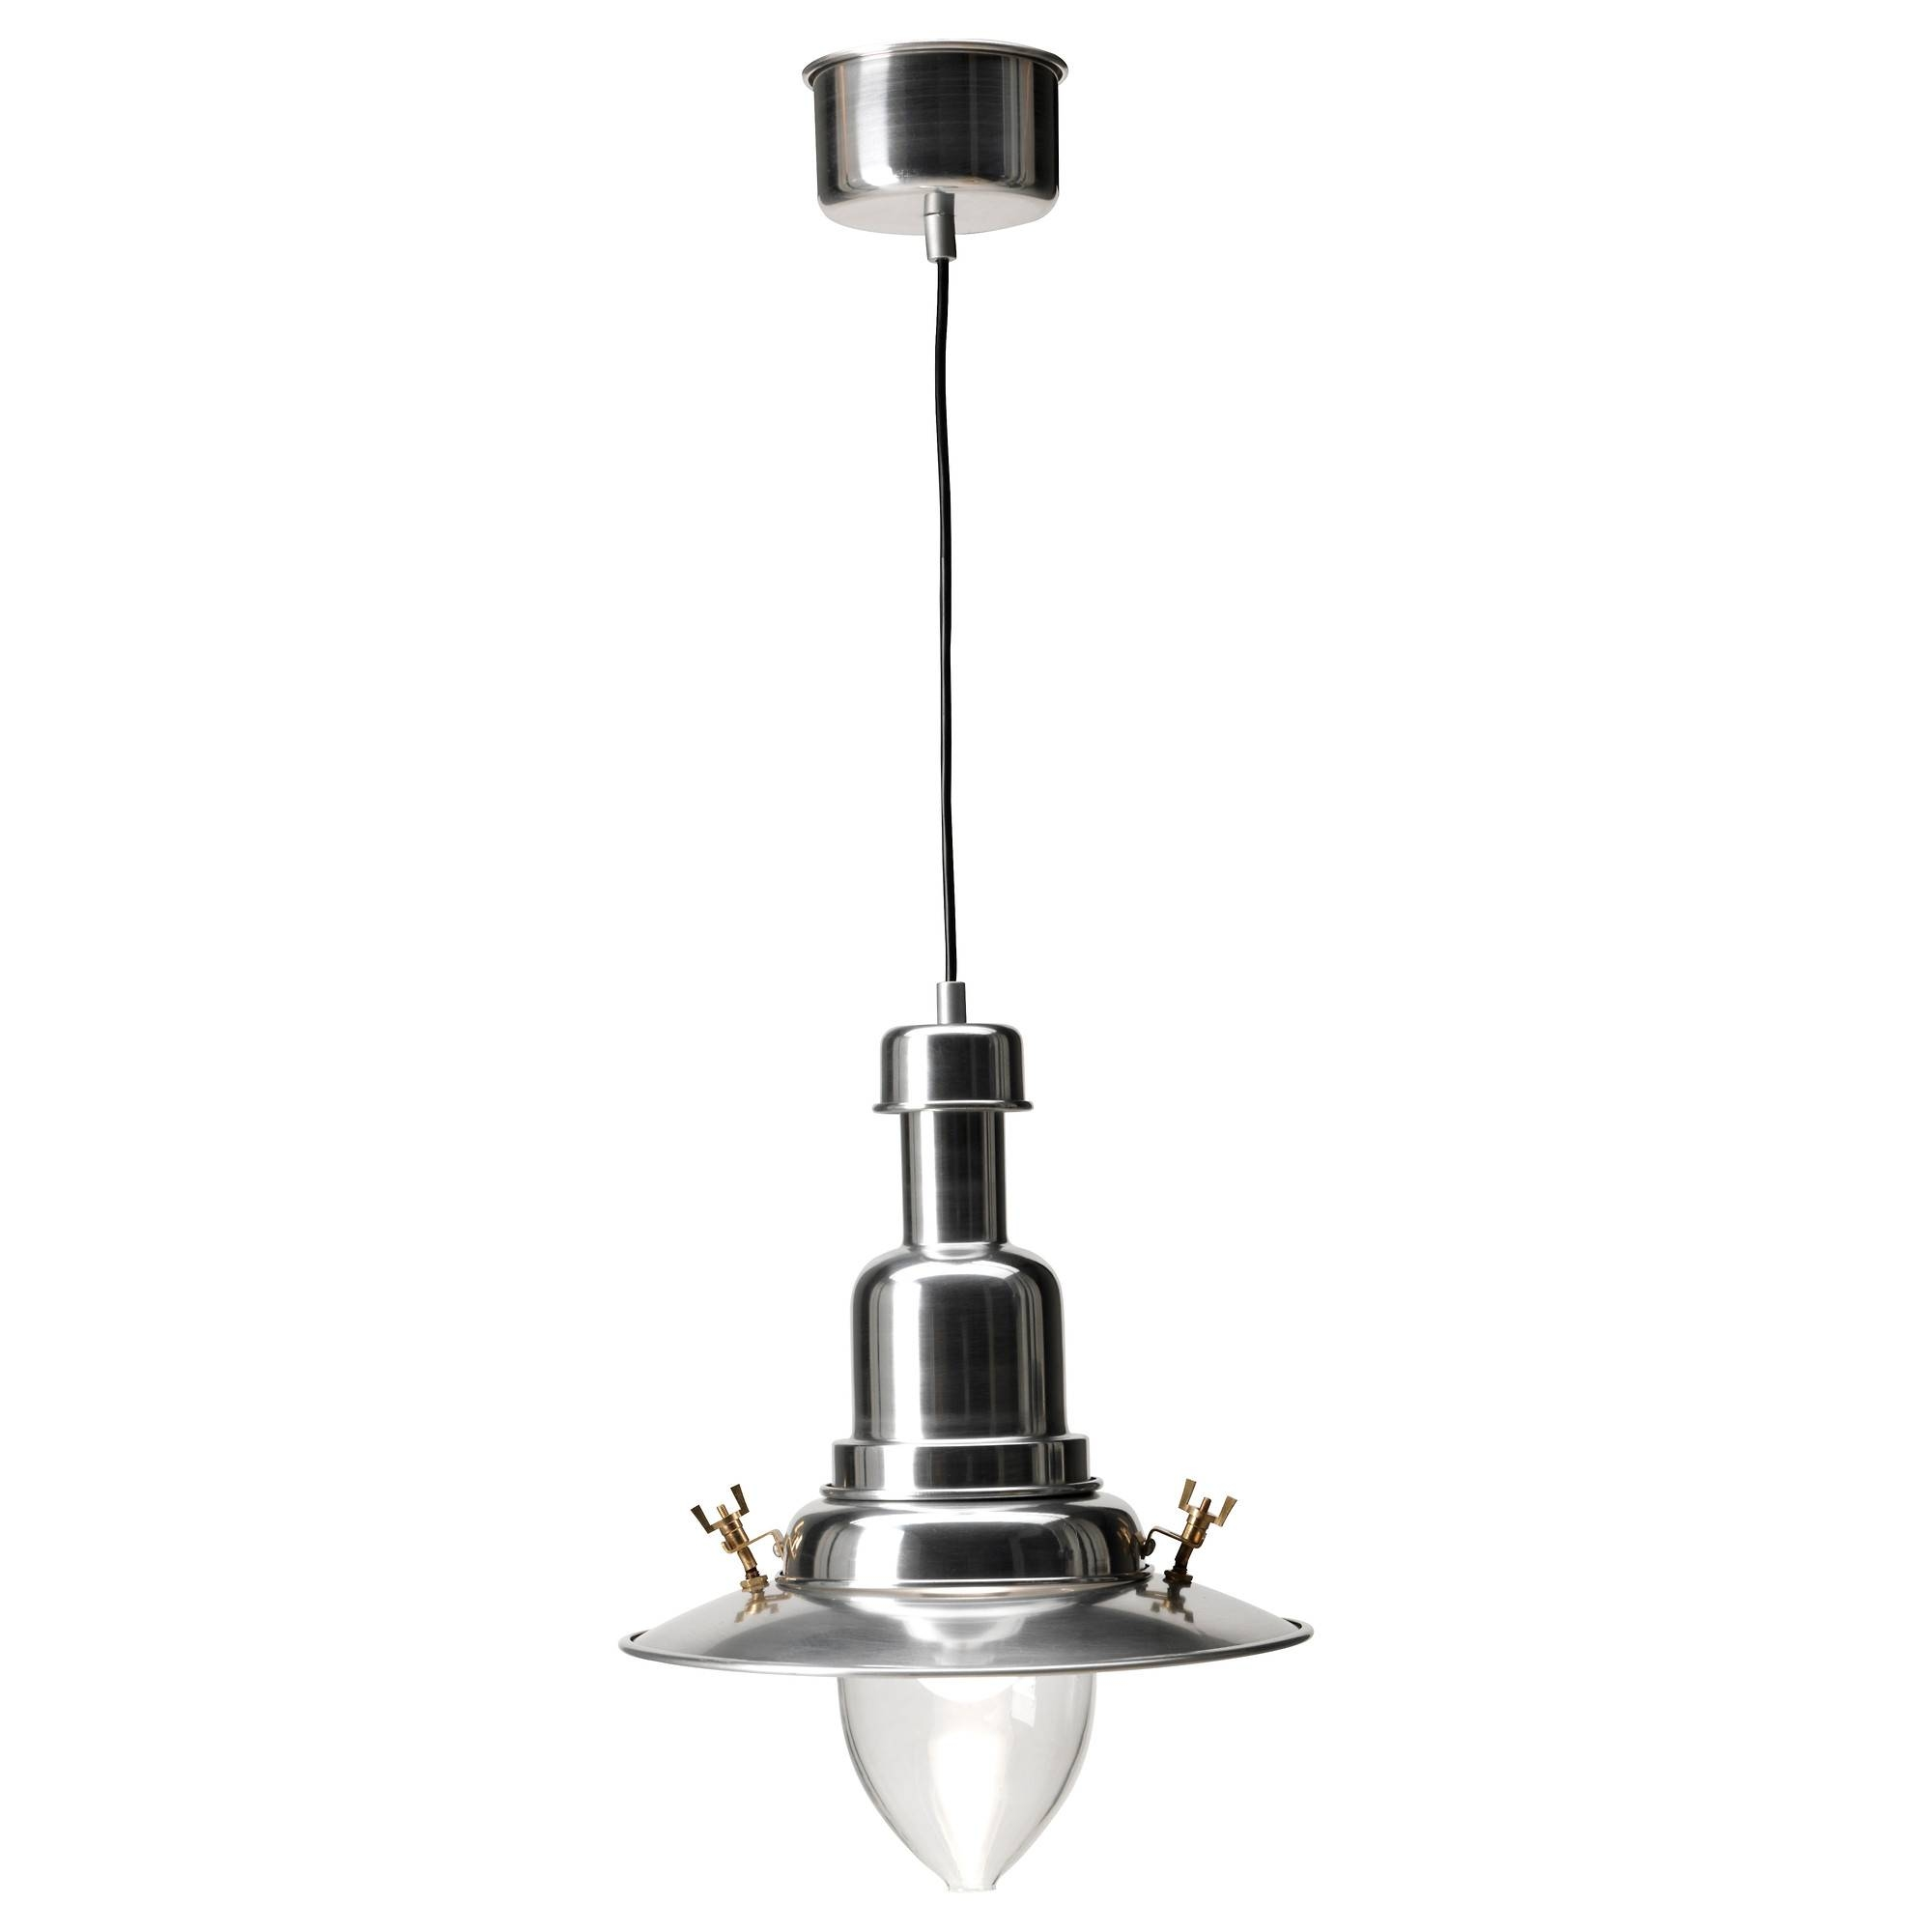 Ottava Pendant Lamp Aluminium – Ikea Pertaining To Ikea Pendent Lights (View 11 of 15)